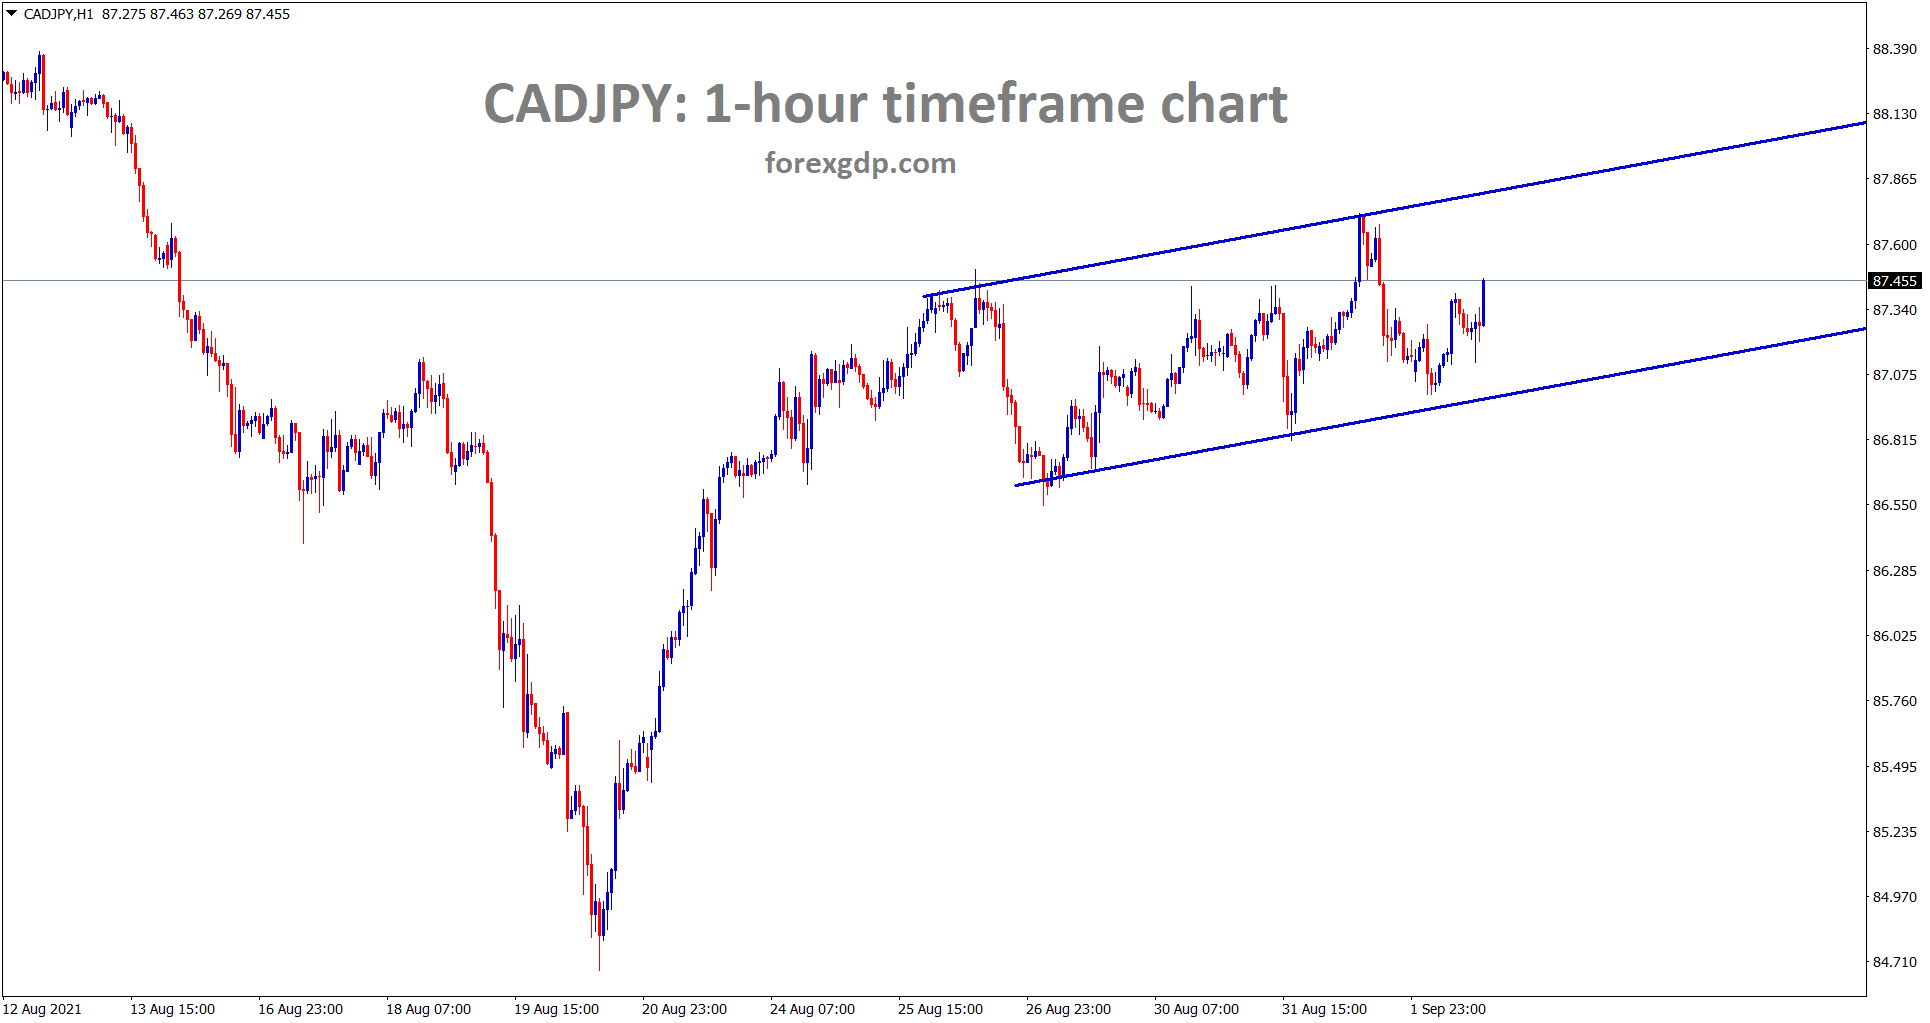 CADJPY is moving in a minor ascending channel range